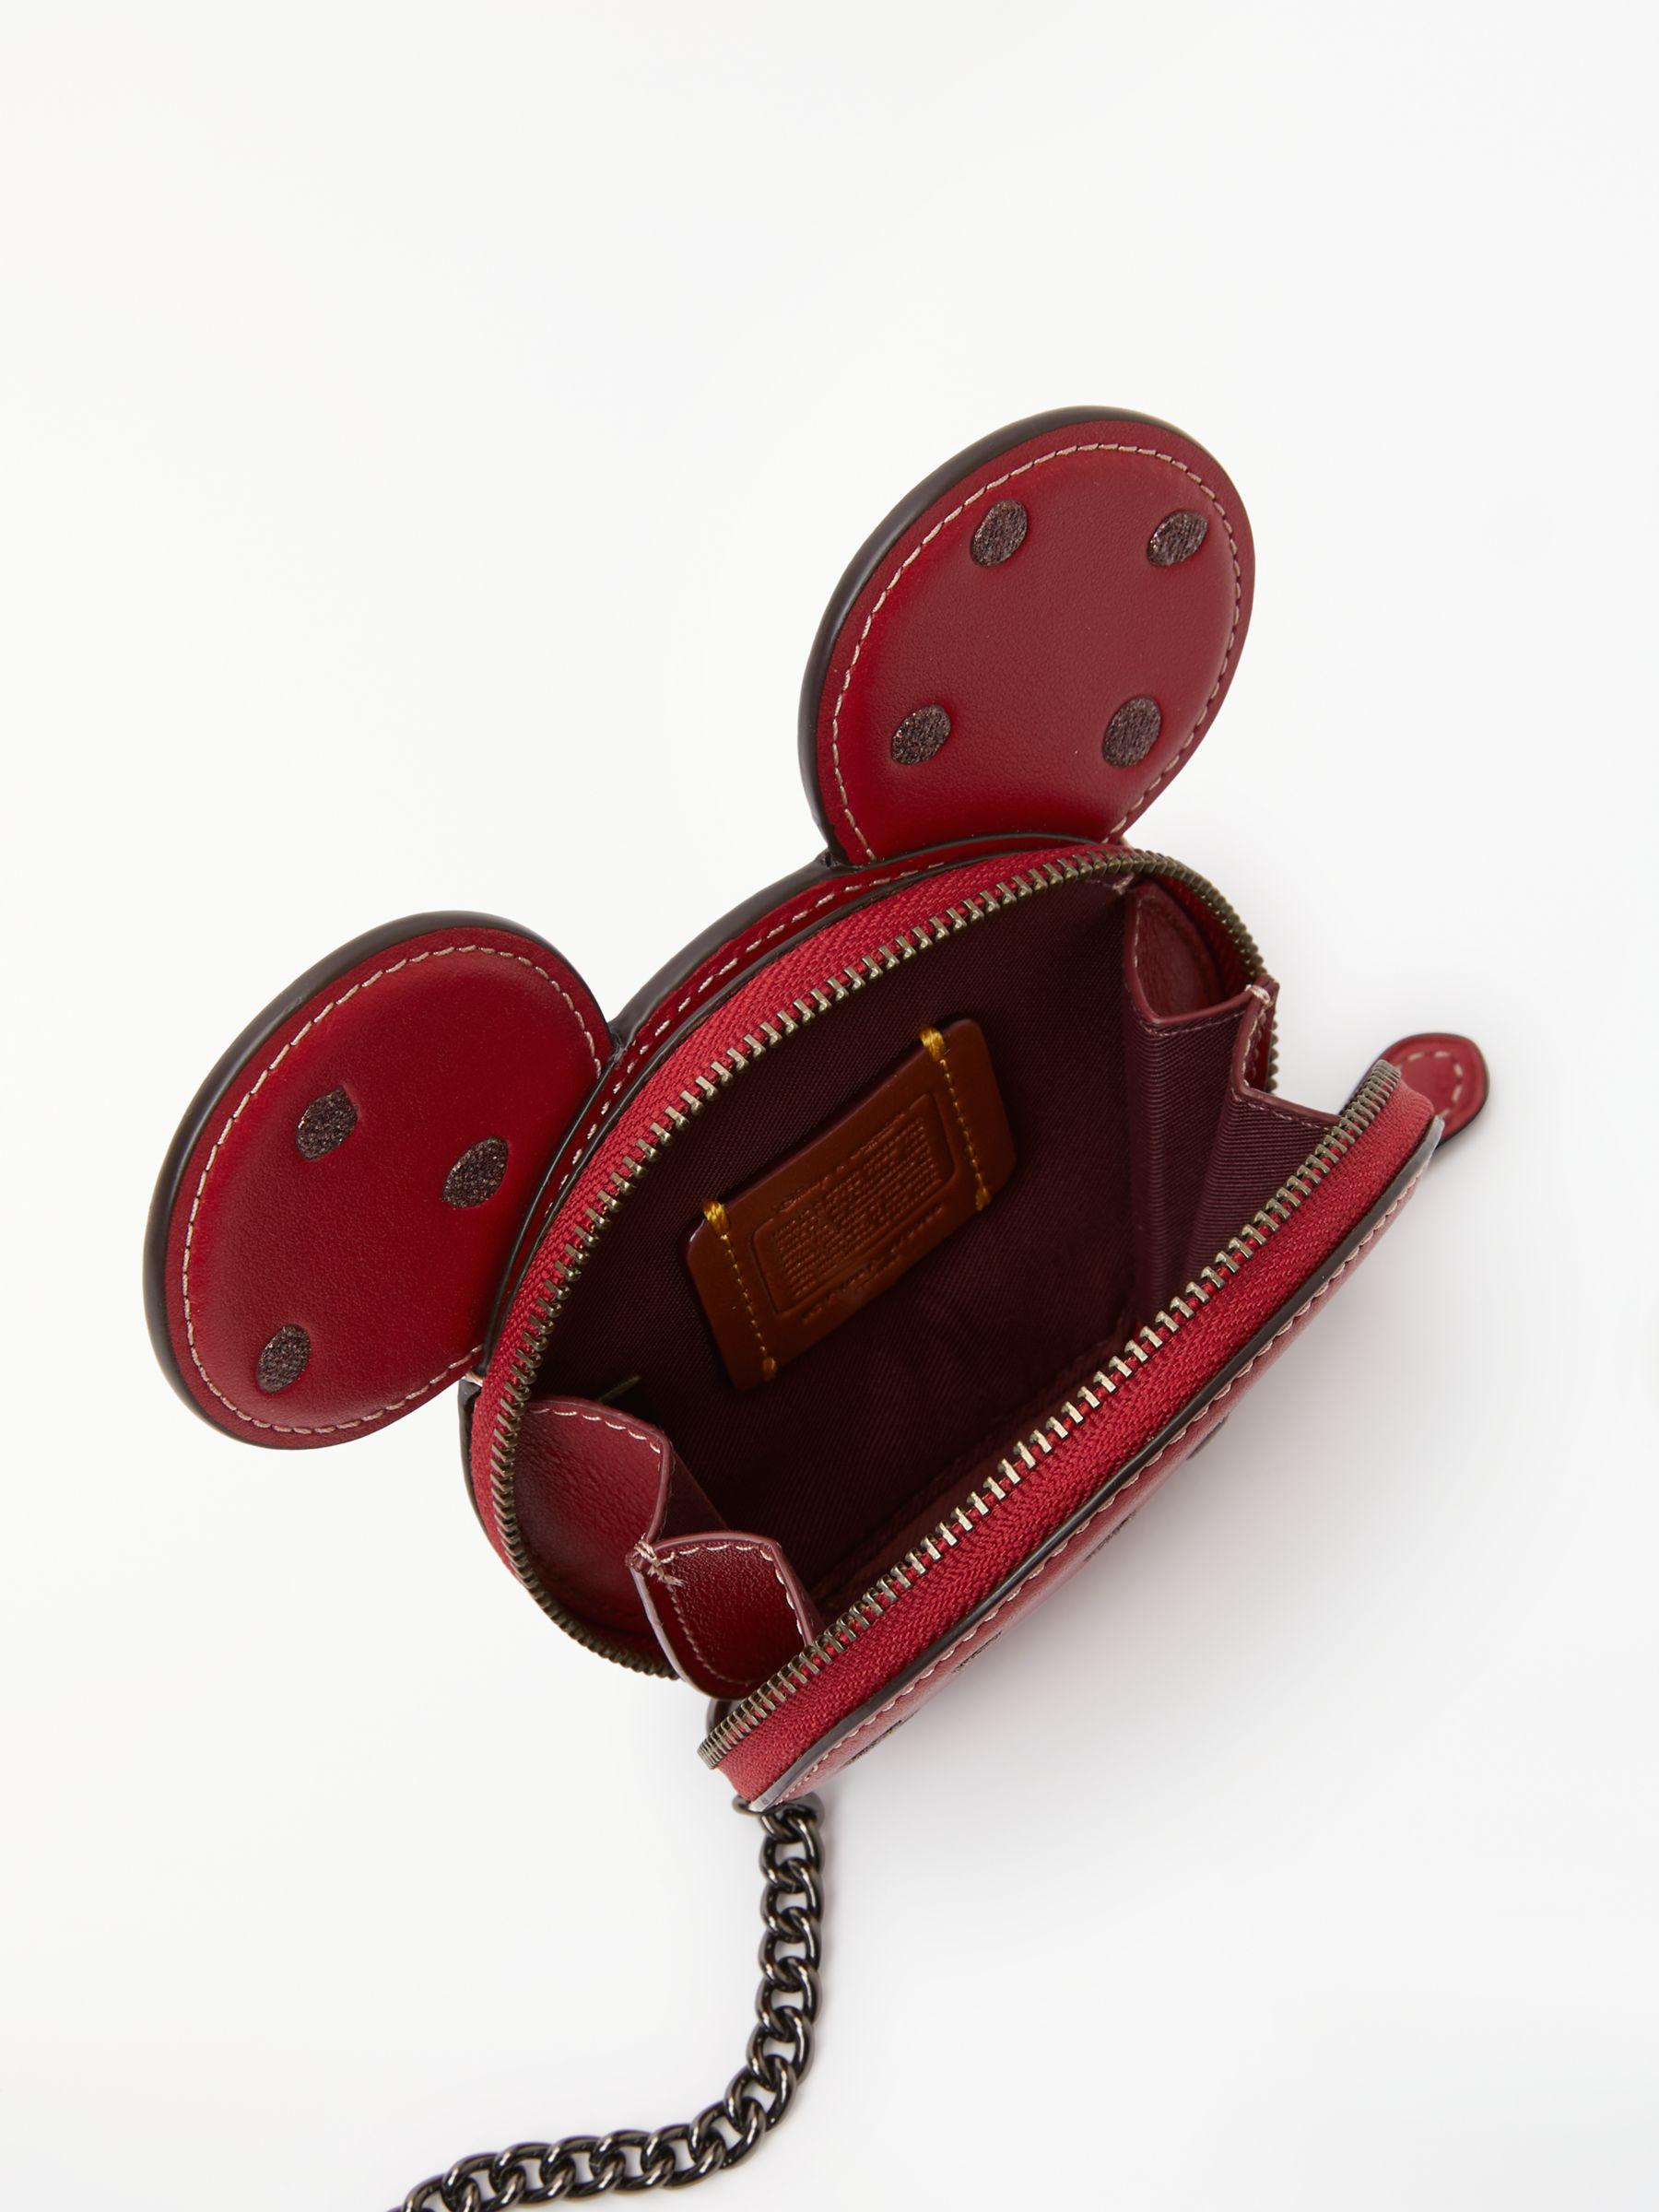 competitive price db3a2 5c57c Coach Minnie Mouse Coin Purse - Best Image Home In Ccdbb.Org